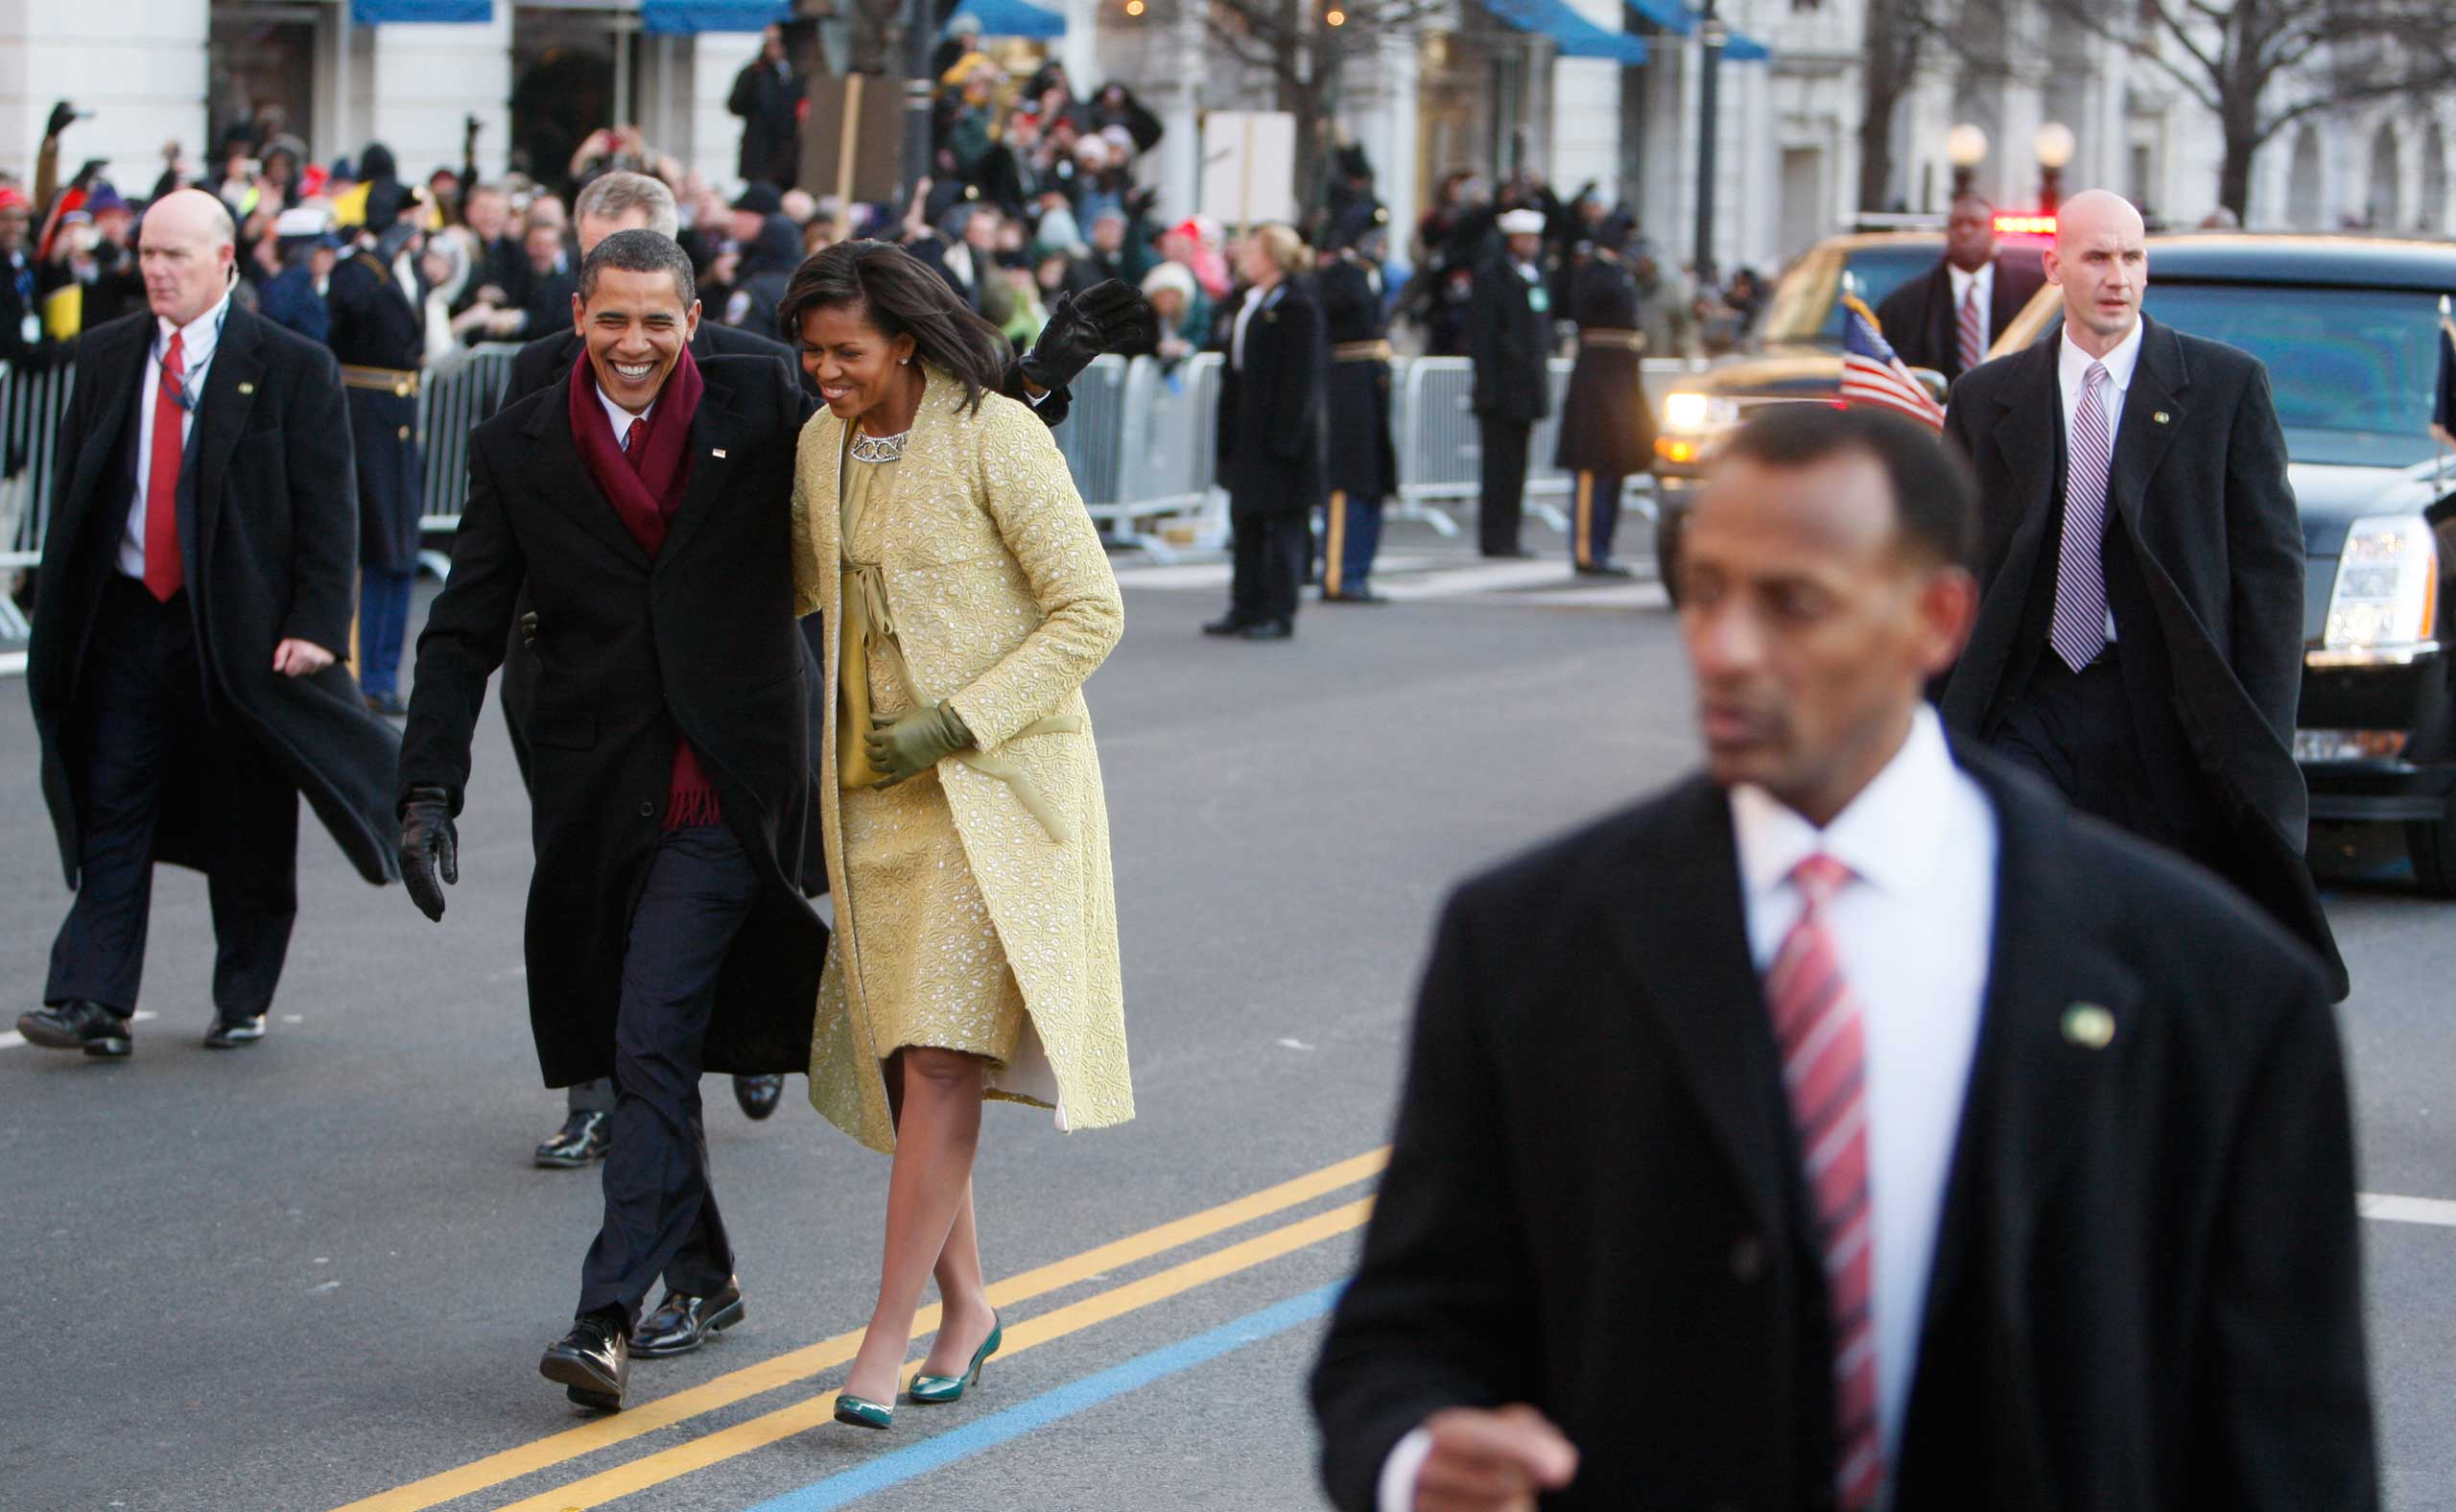 Blink and you might miss him, but here's Clancy again, flanking President Obama and first lady Michelle Obama as they wave to crowds along the inaugural parade route in Washington D.C. on Jan. 20, 2009.